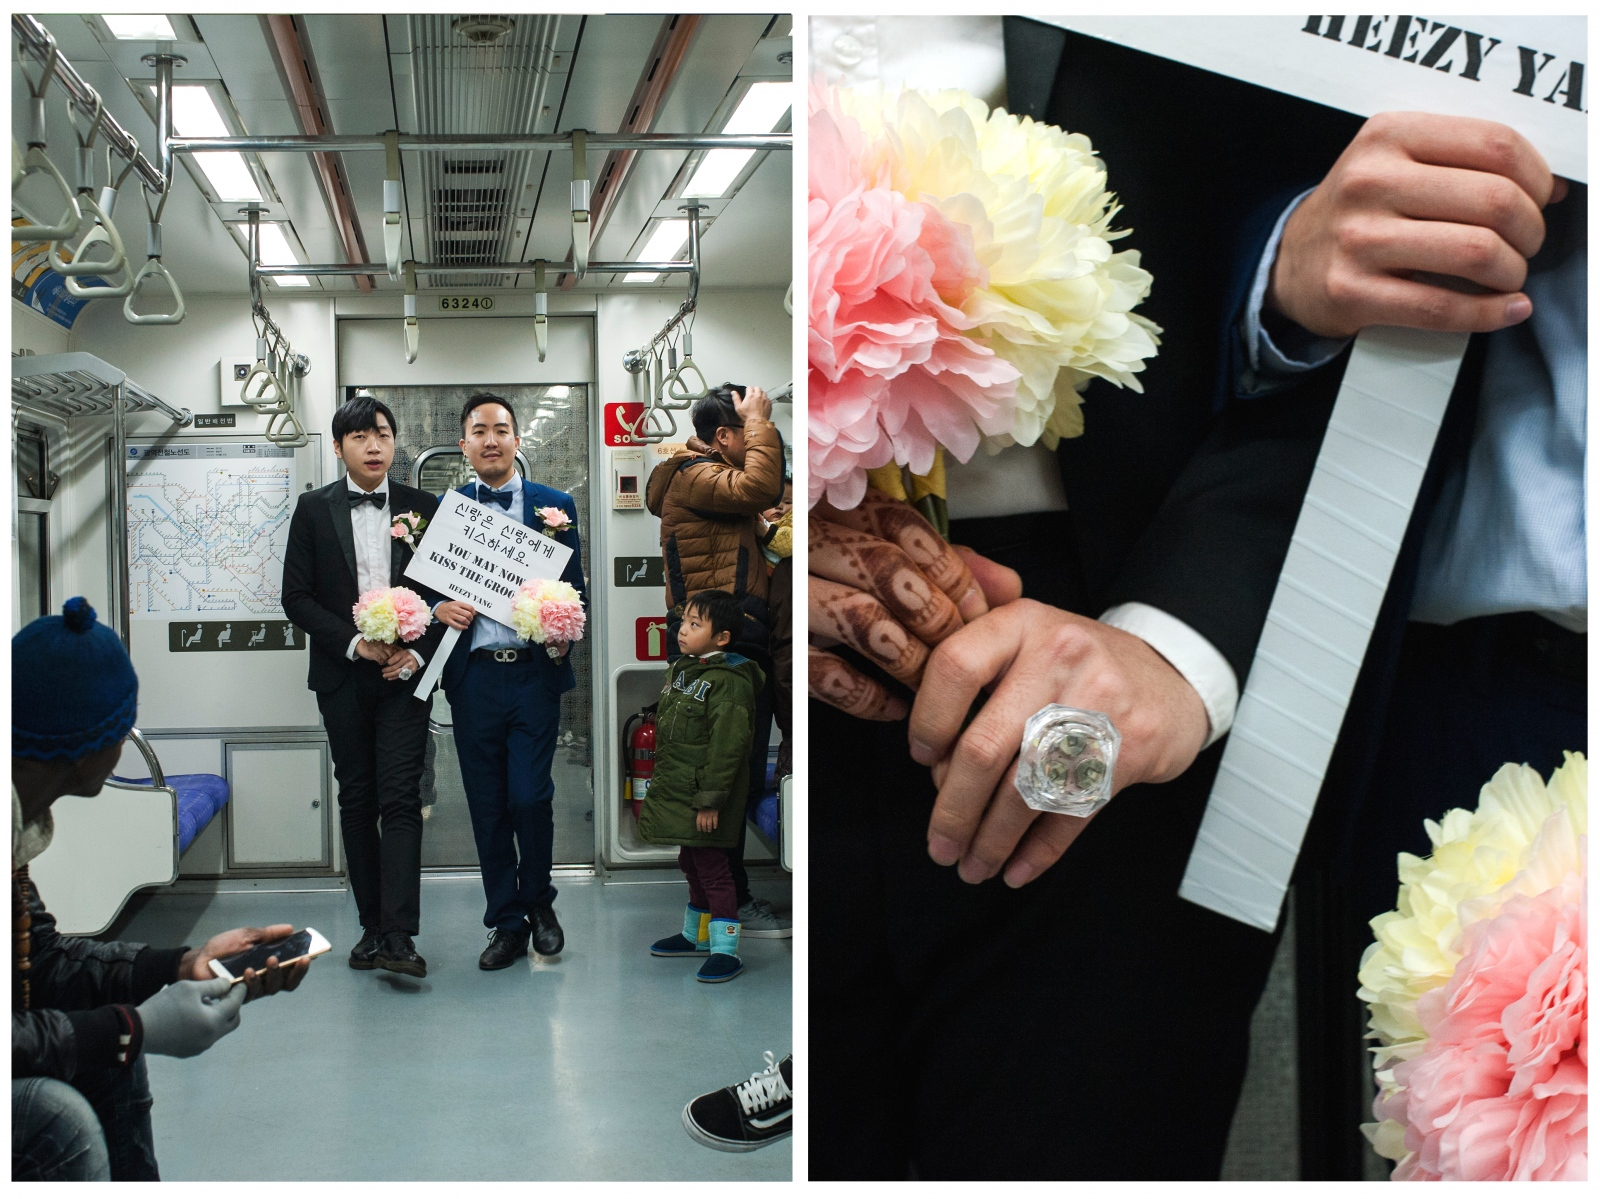 """In Seoul's subway, Yang (right) performs """"May the Groom Kiss the Groom,"""" a mock gay wedding, with fellow artist friend Seunghwa Baek to raise awareness about the lack of same-sex marriage rights in South Korea. """"As it usually is in Korea, the experience has been a lot people looking at their phones, pretending they don't see me, minding their own business. But it's a step by step process."""""""